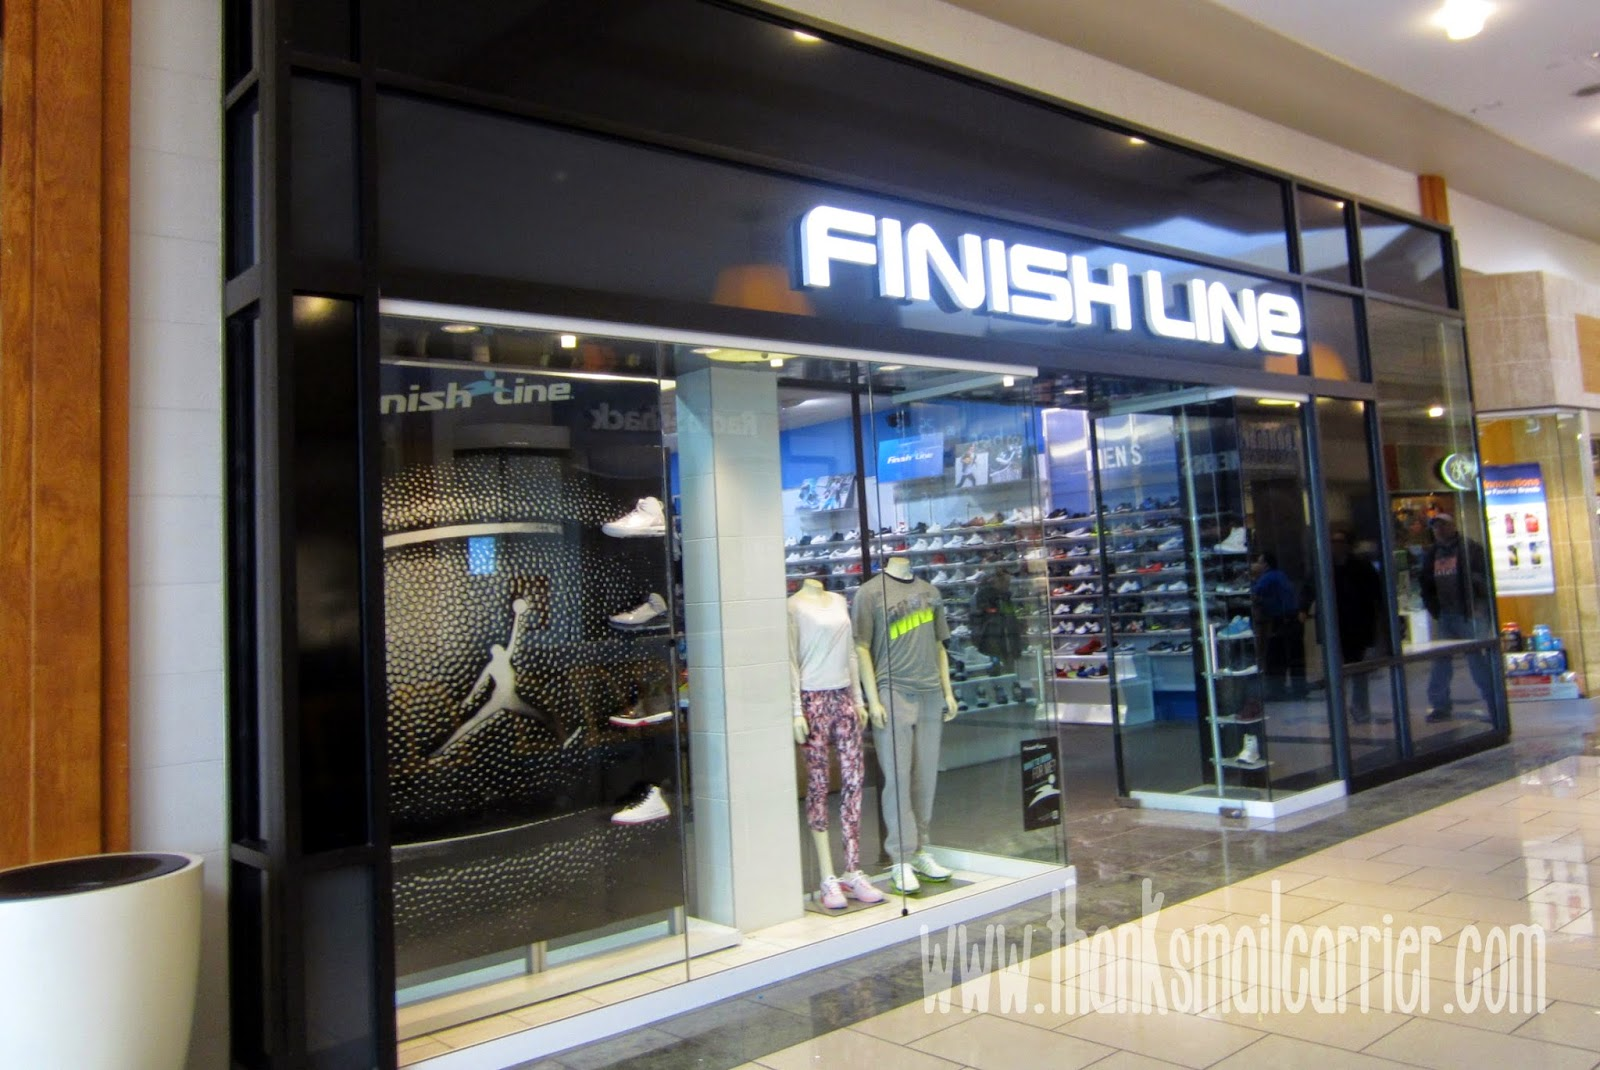 Finish Line stores